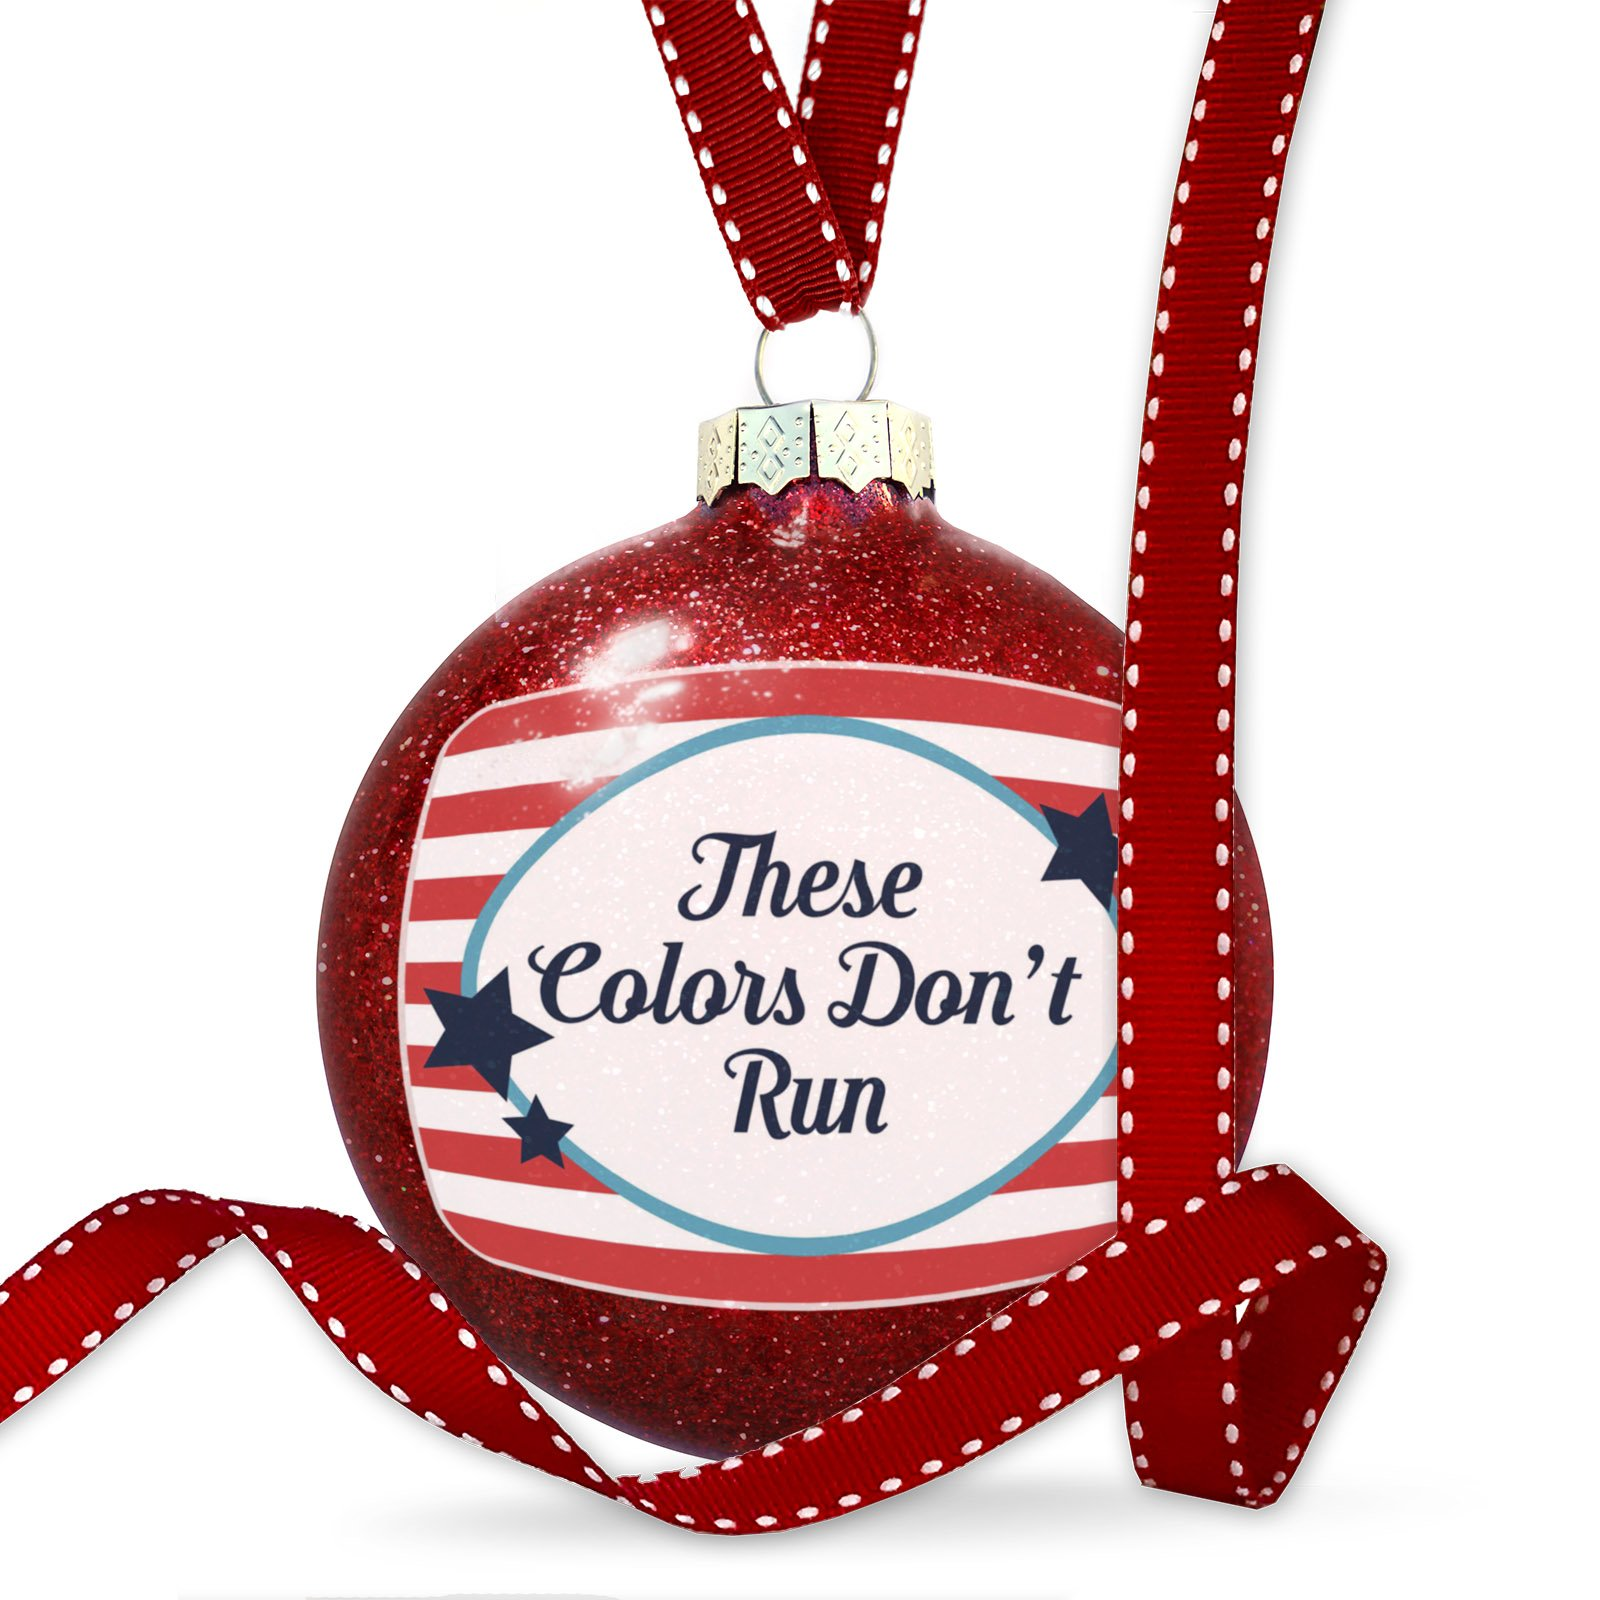 Christmas Decoration These Colors Don't Run Fourth of July America Stars and Stripes Ornament